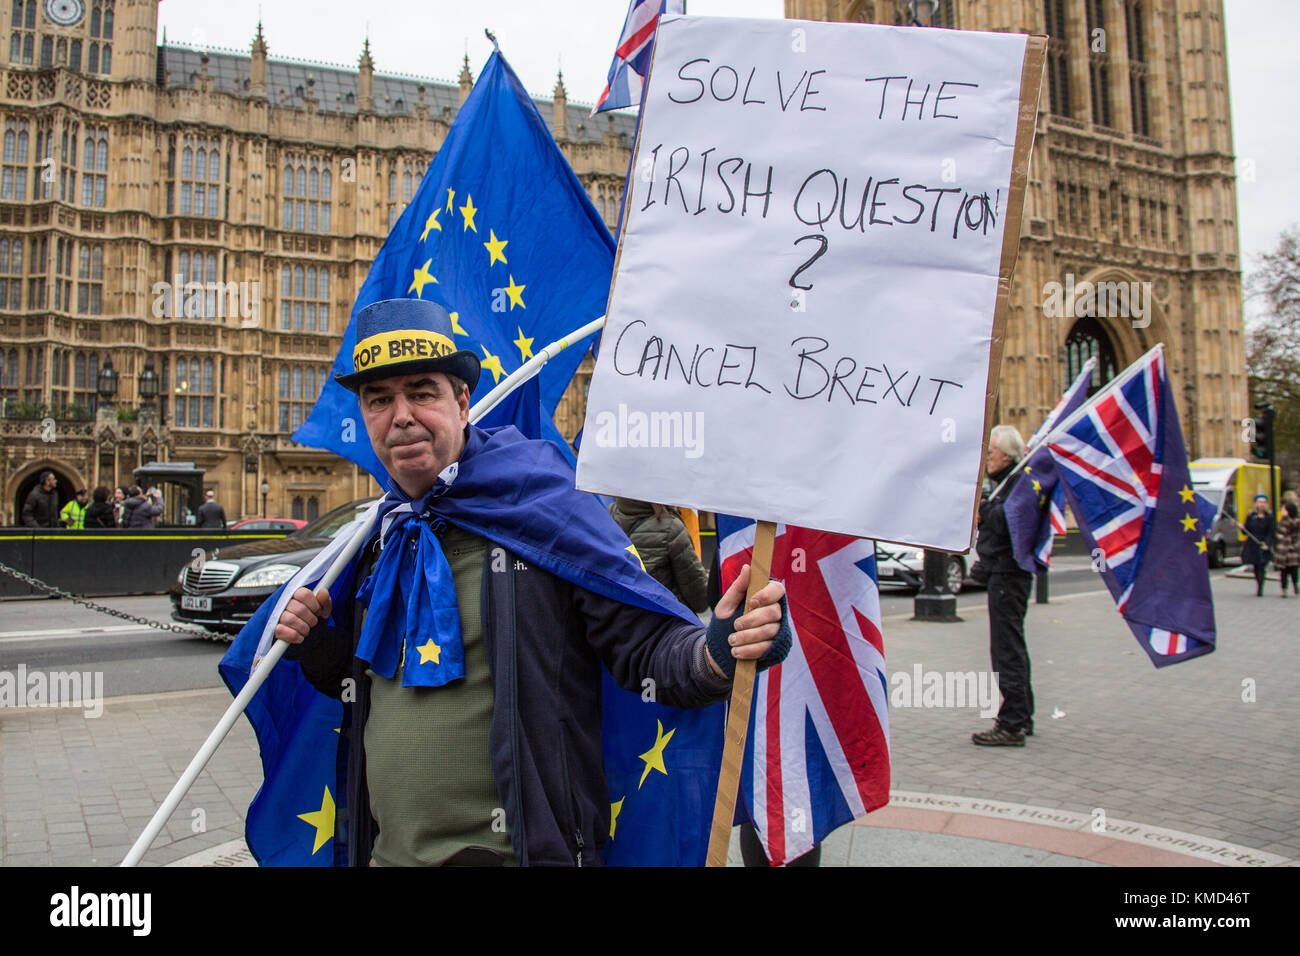 London, UK. 6 December 2017. 'Solve the Irish question, cancel brexit'. Protester Stephen Bray wearing a Stop Brexit Stock Photo